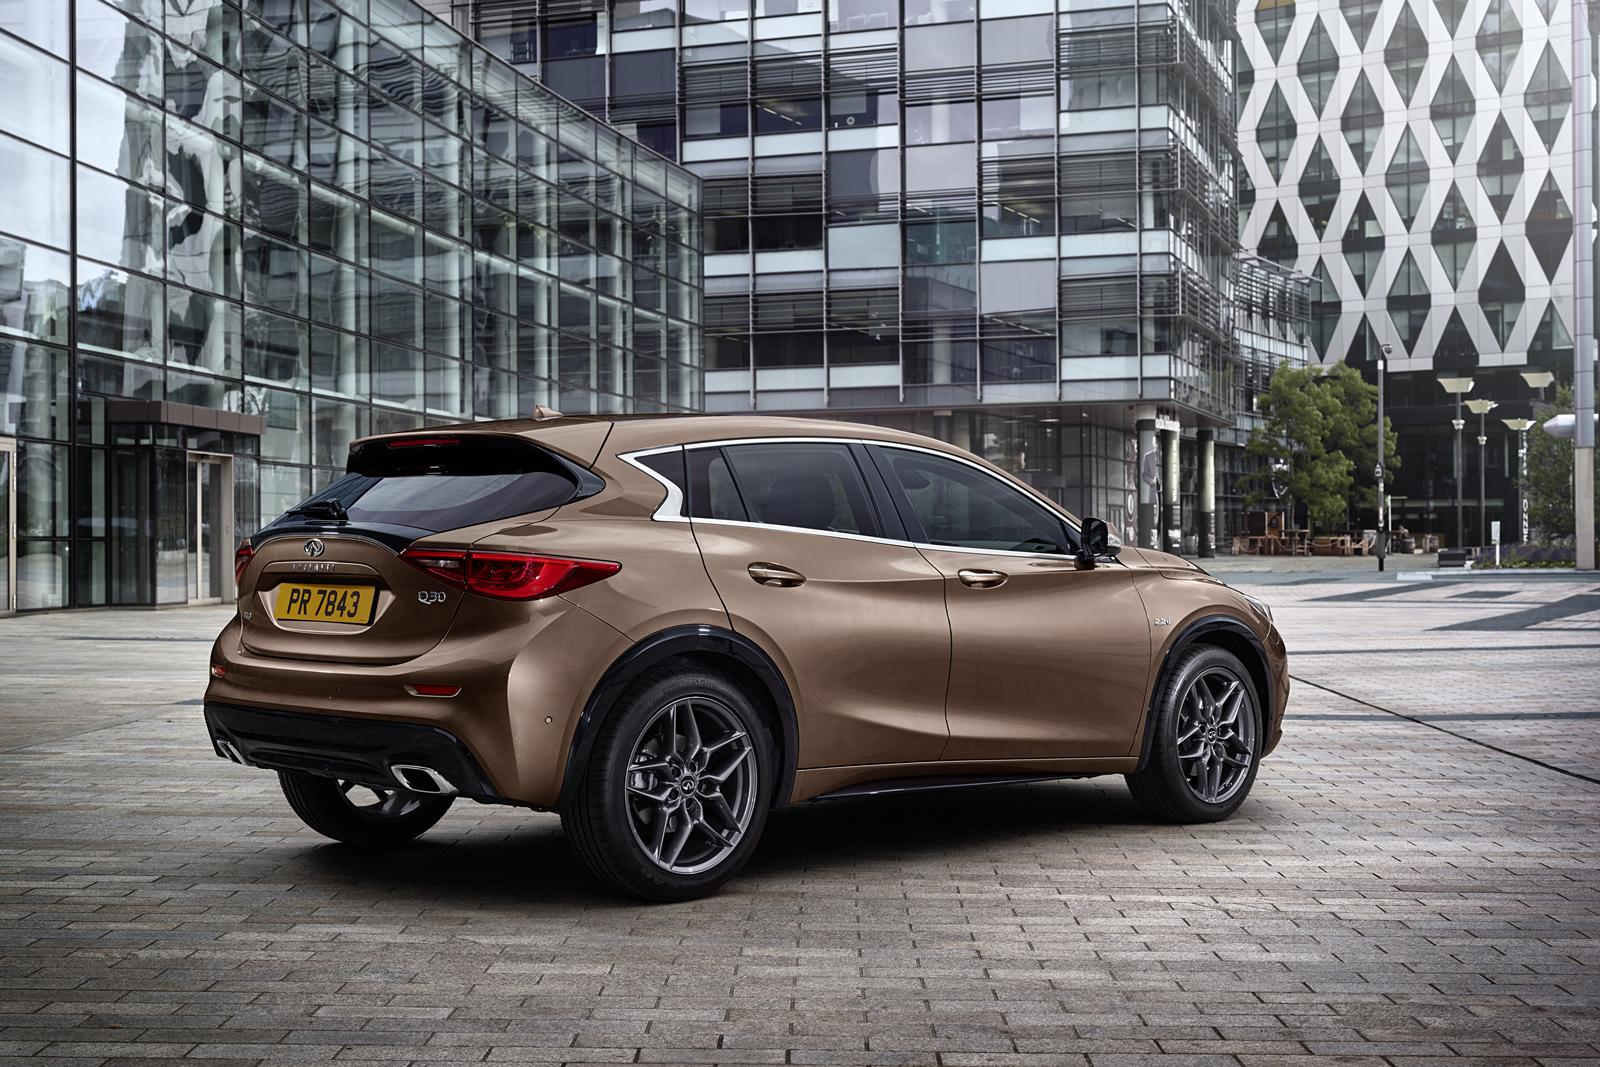 infiniti q30 premium hatchback specs revealed four turbo engines awd autoevolution. Black Bedroom Furniture Sets. Home Design Ideas